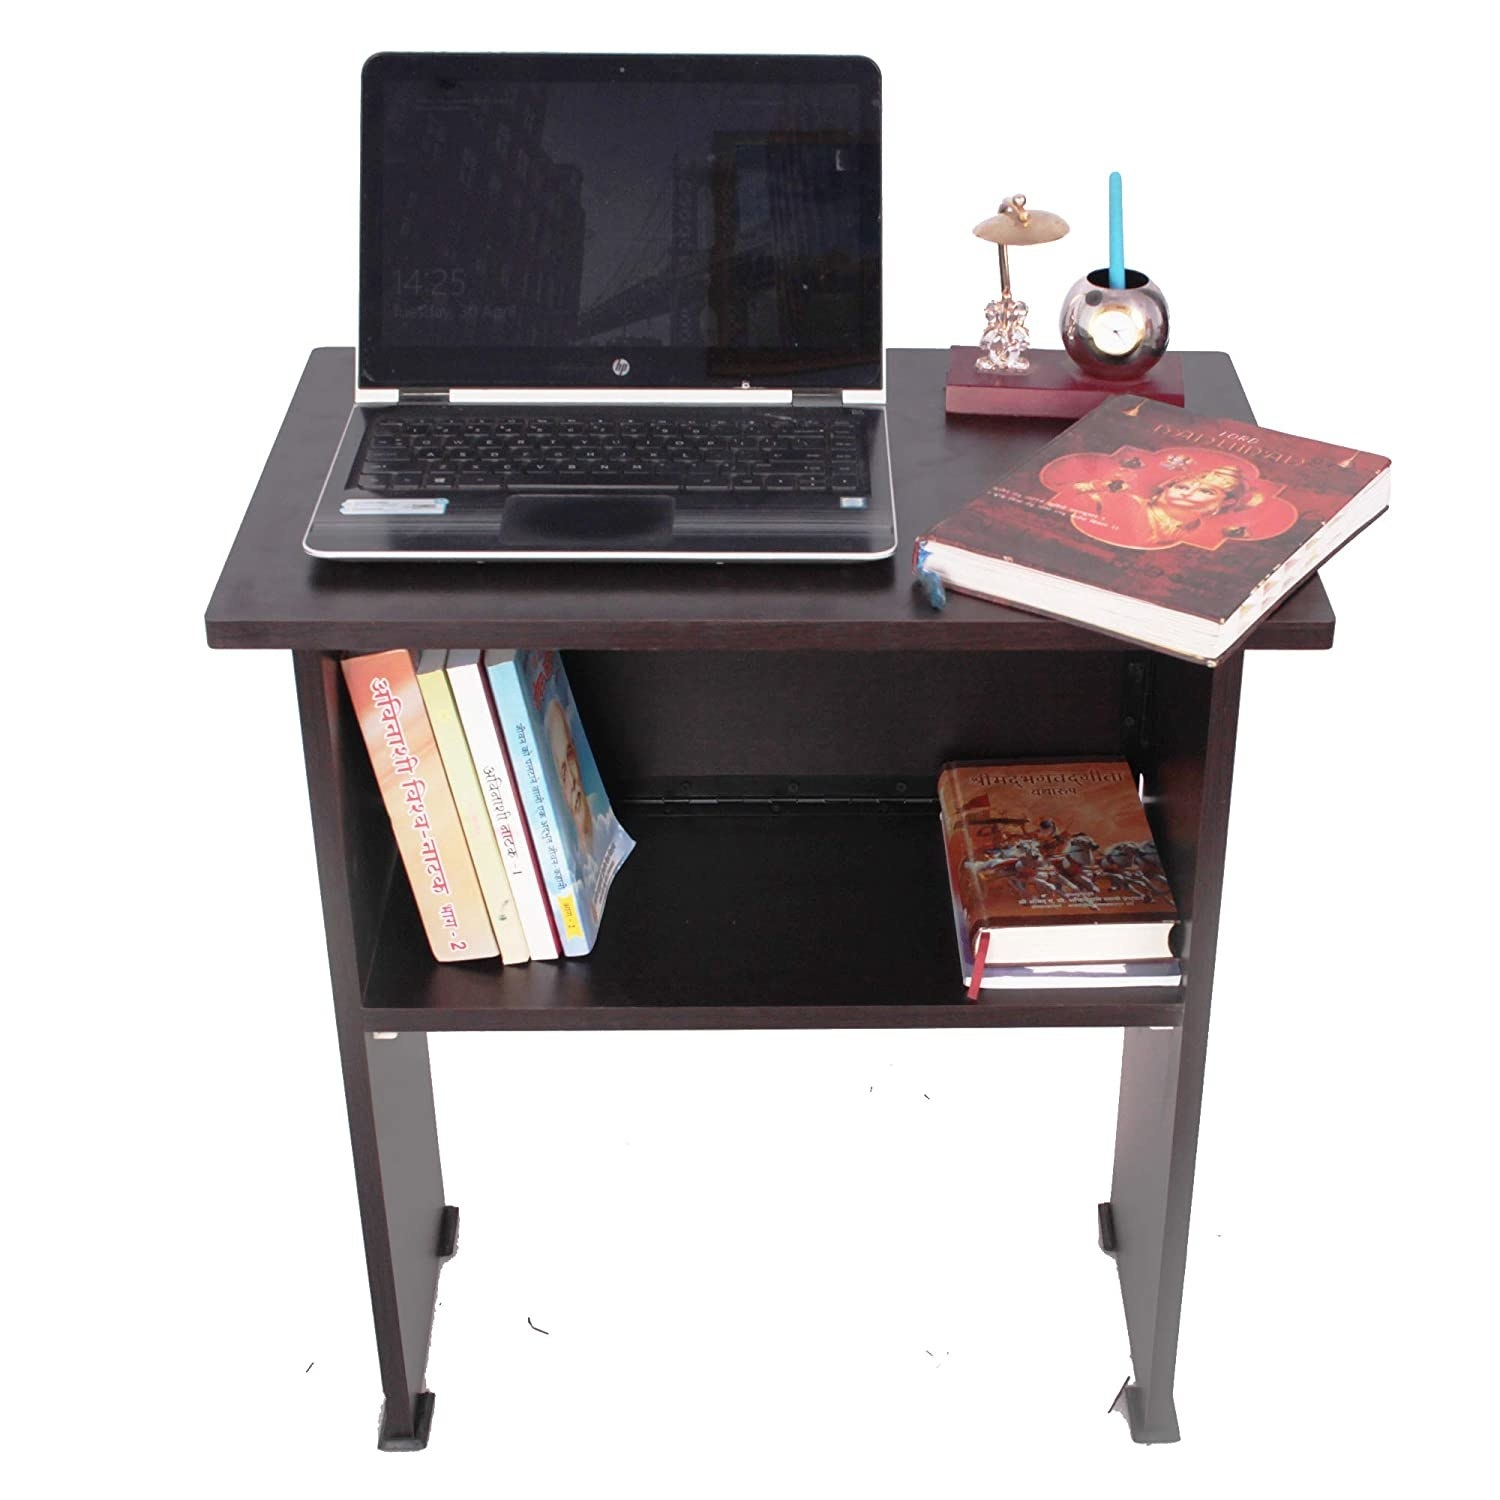 A wooden table with a laptop, books, and some stationery on it